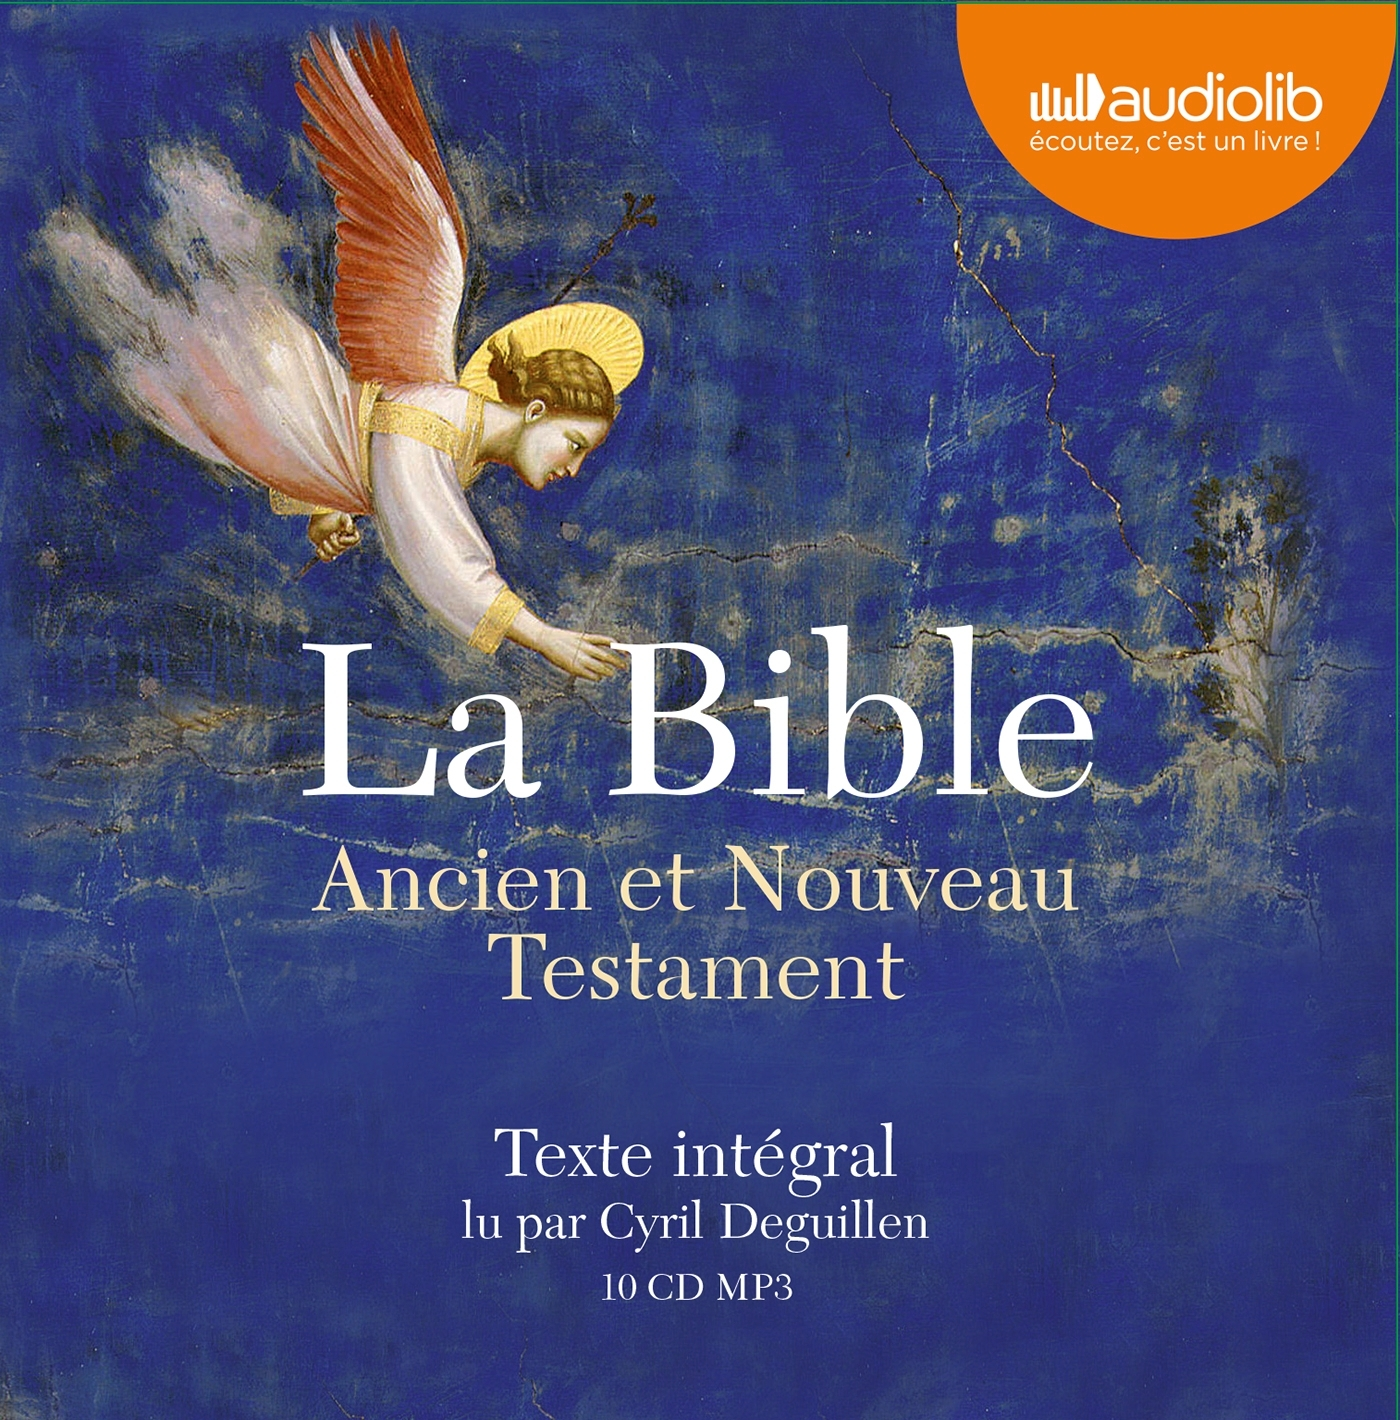 LA BIBLE - LIVRE AUDIO 10 CD MP3 - LIVRET 32 PAGES